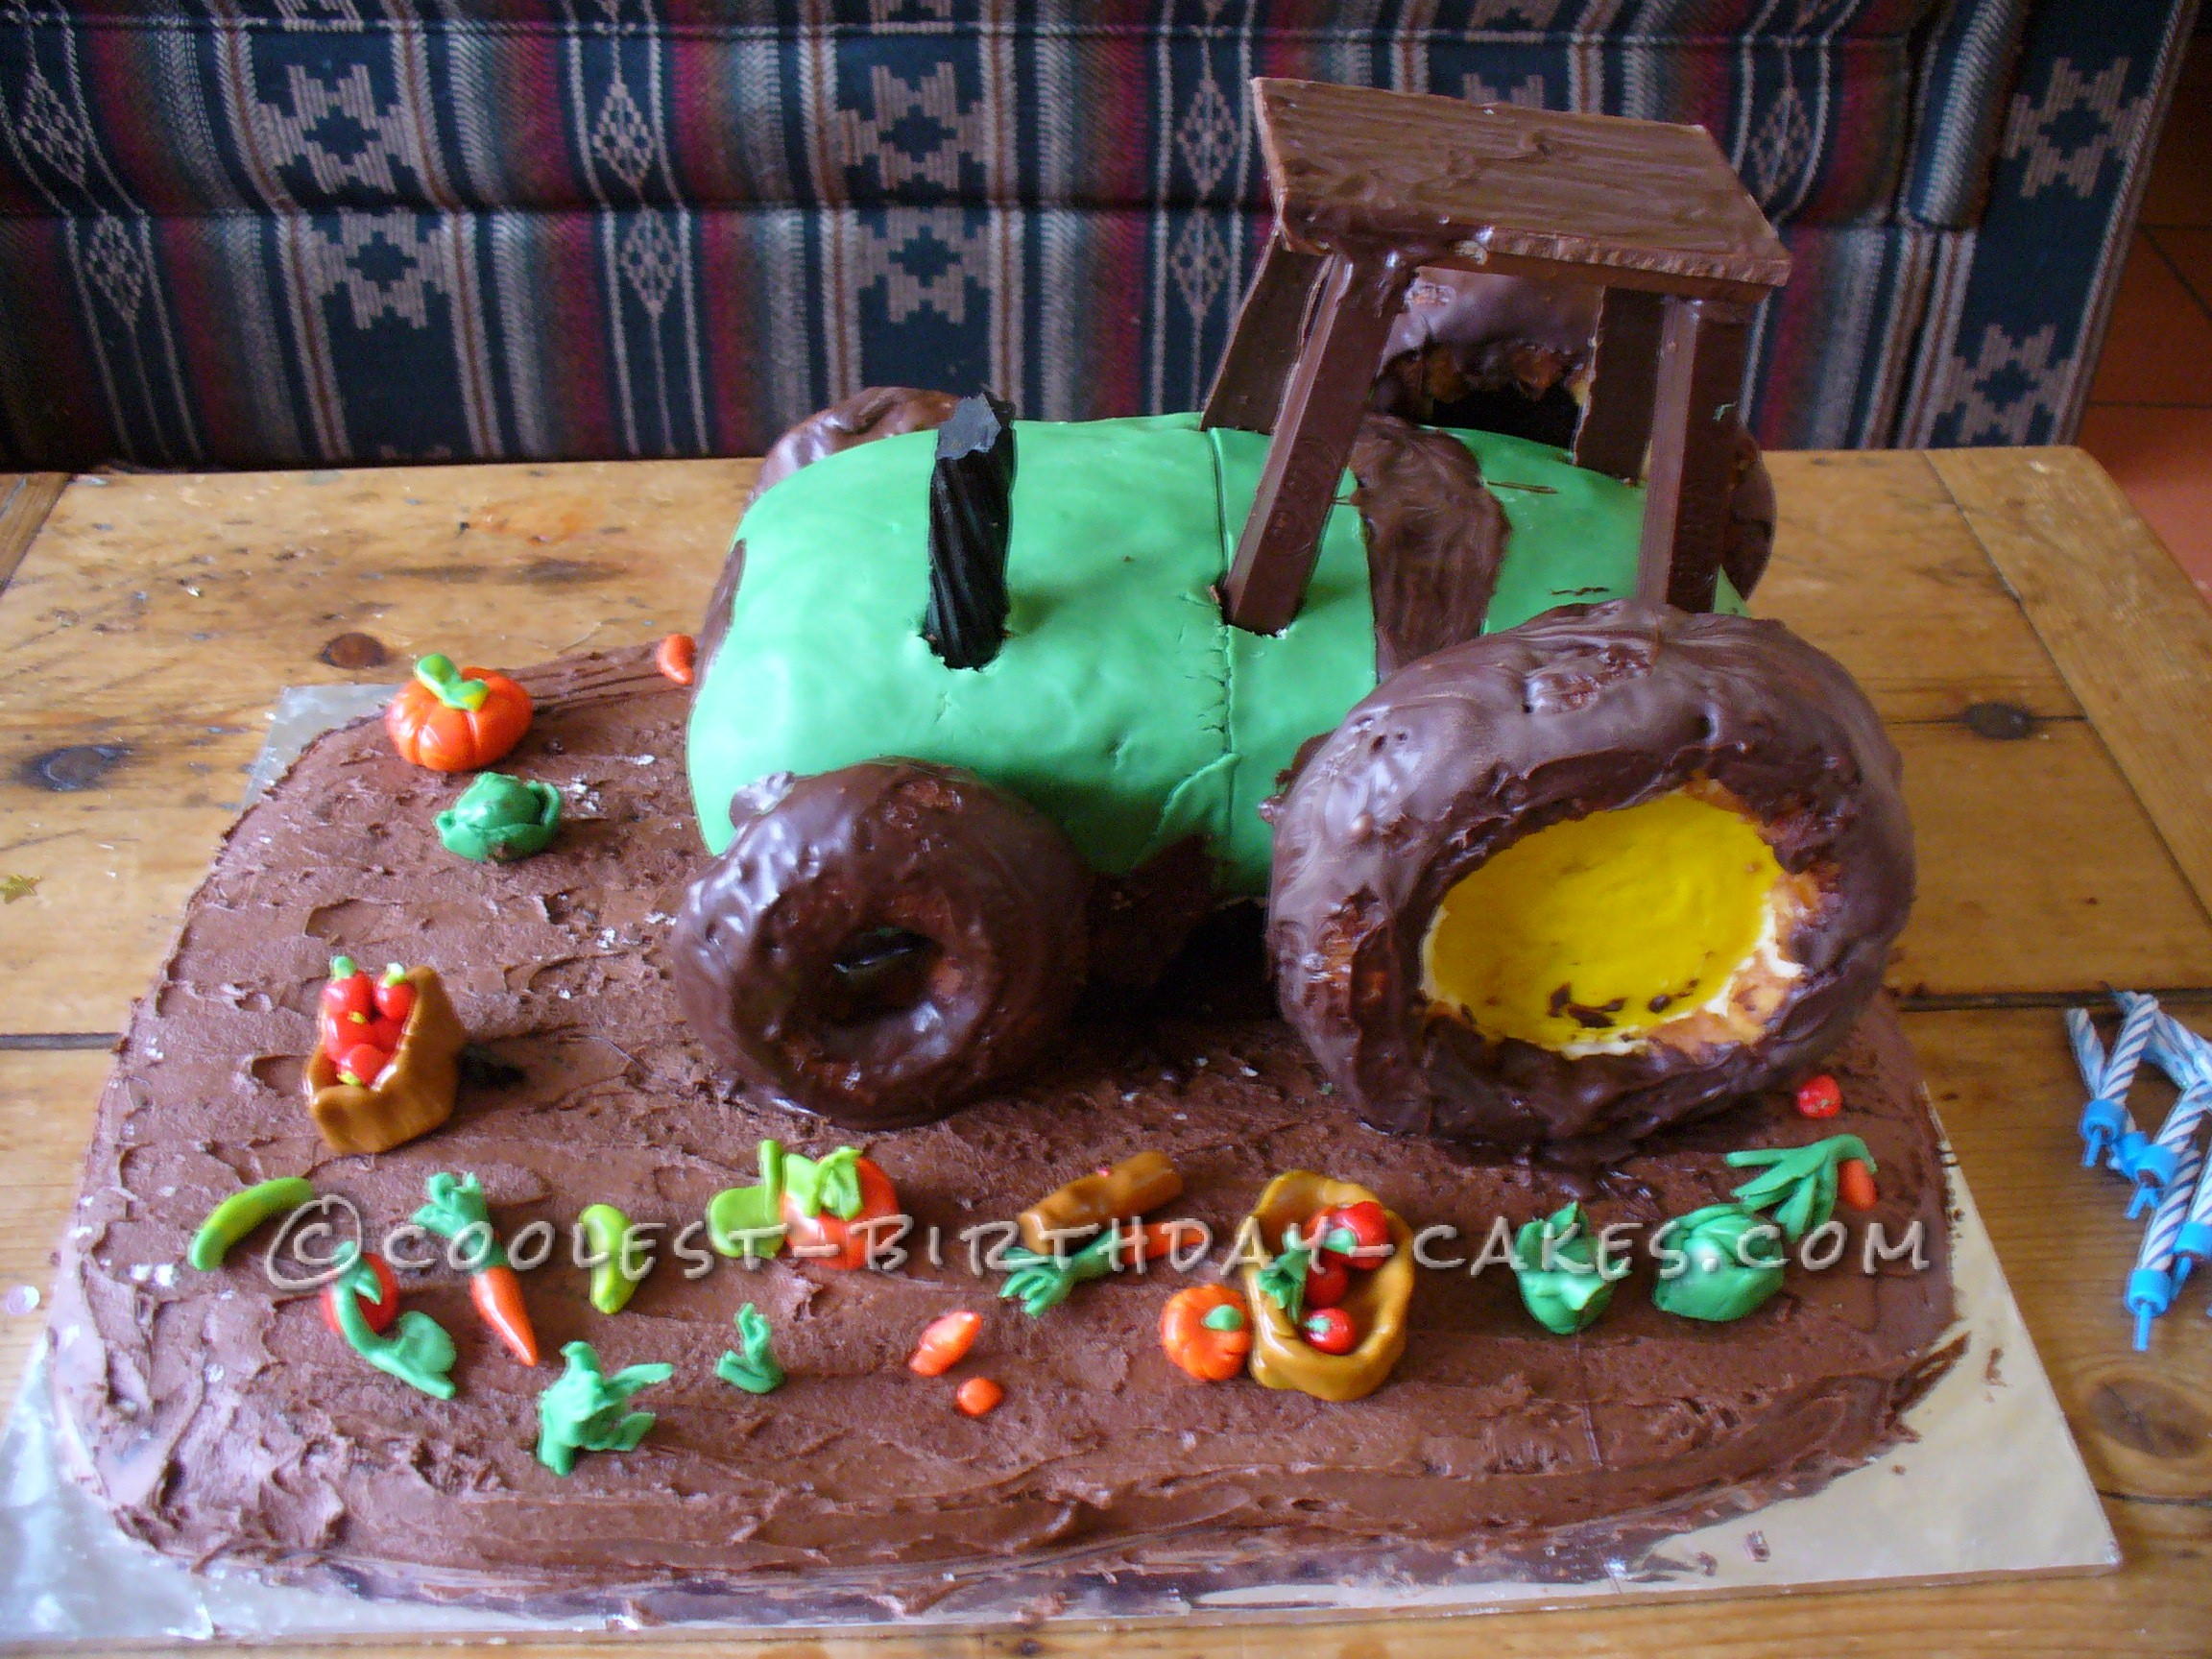 Awesome Chocolate Mud Tractor Birthday Cake with Vegetables